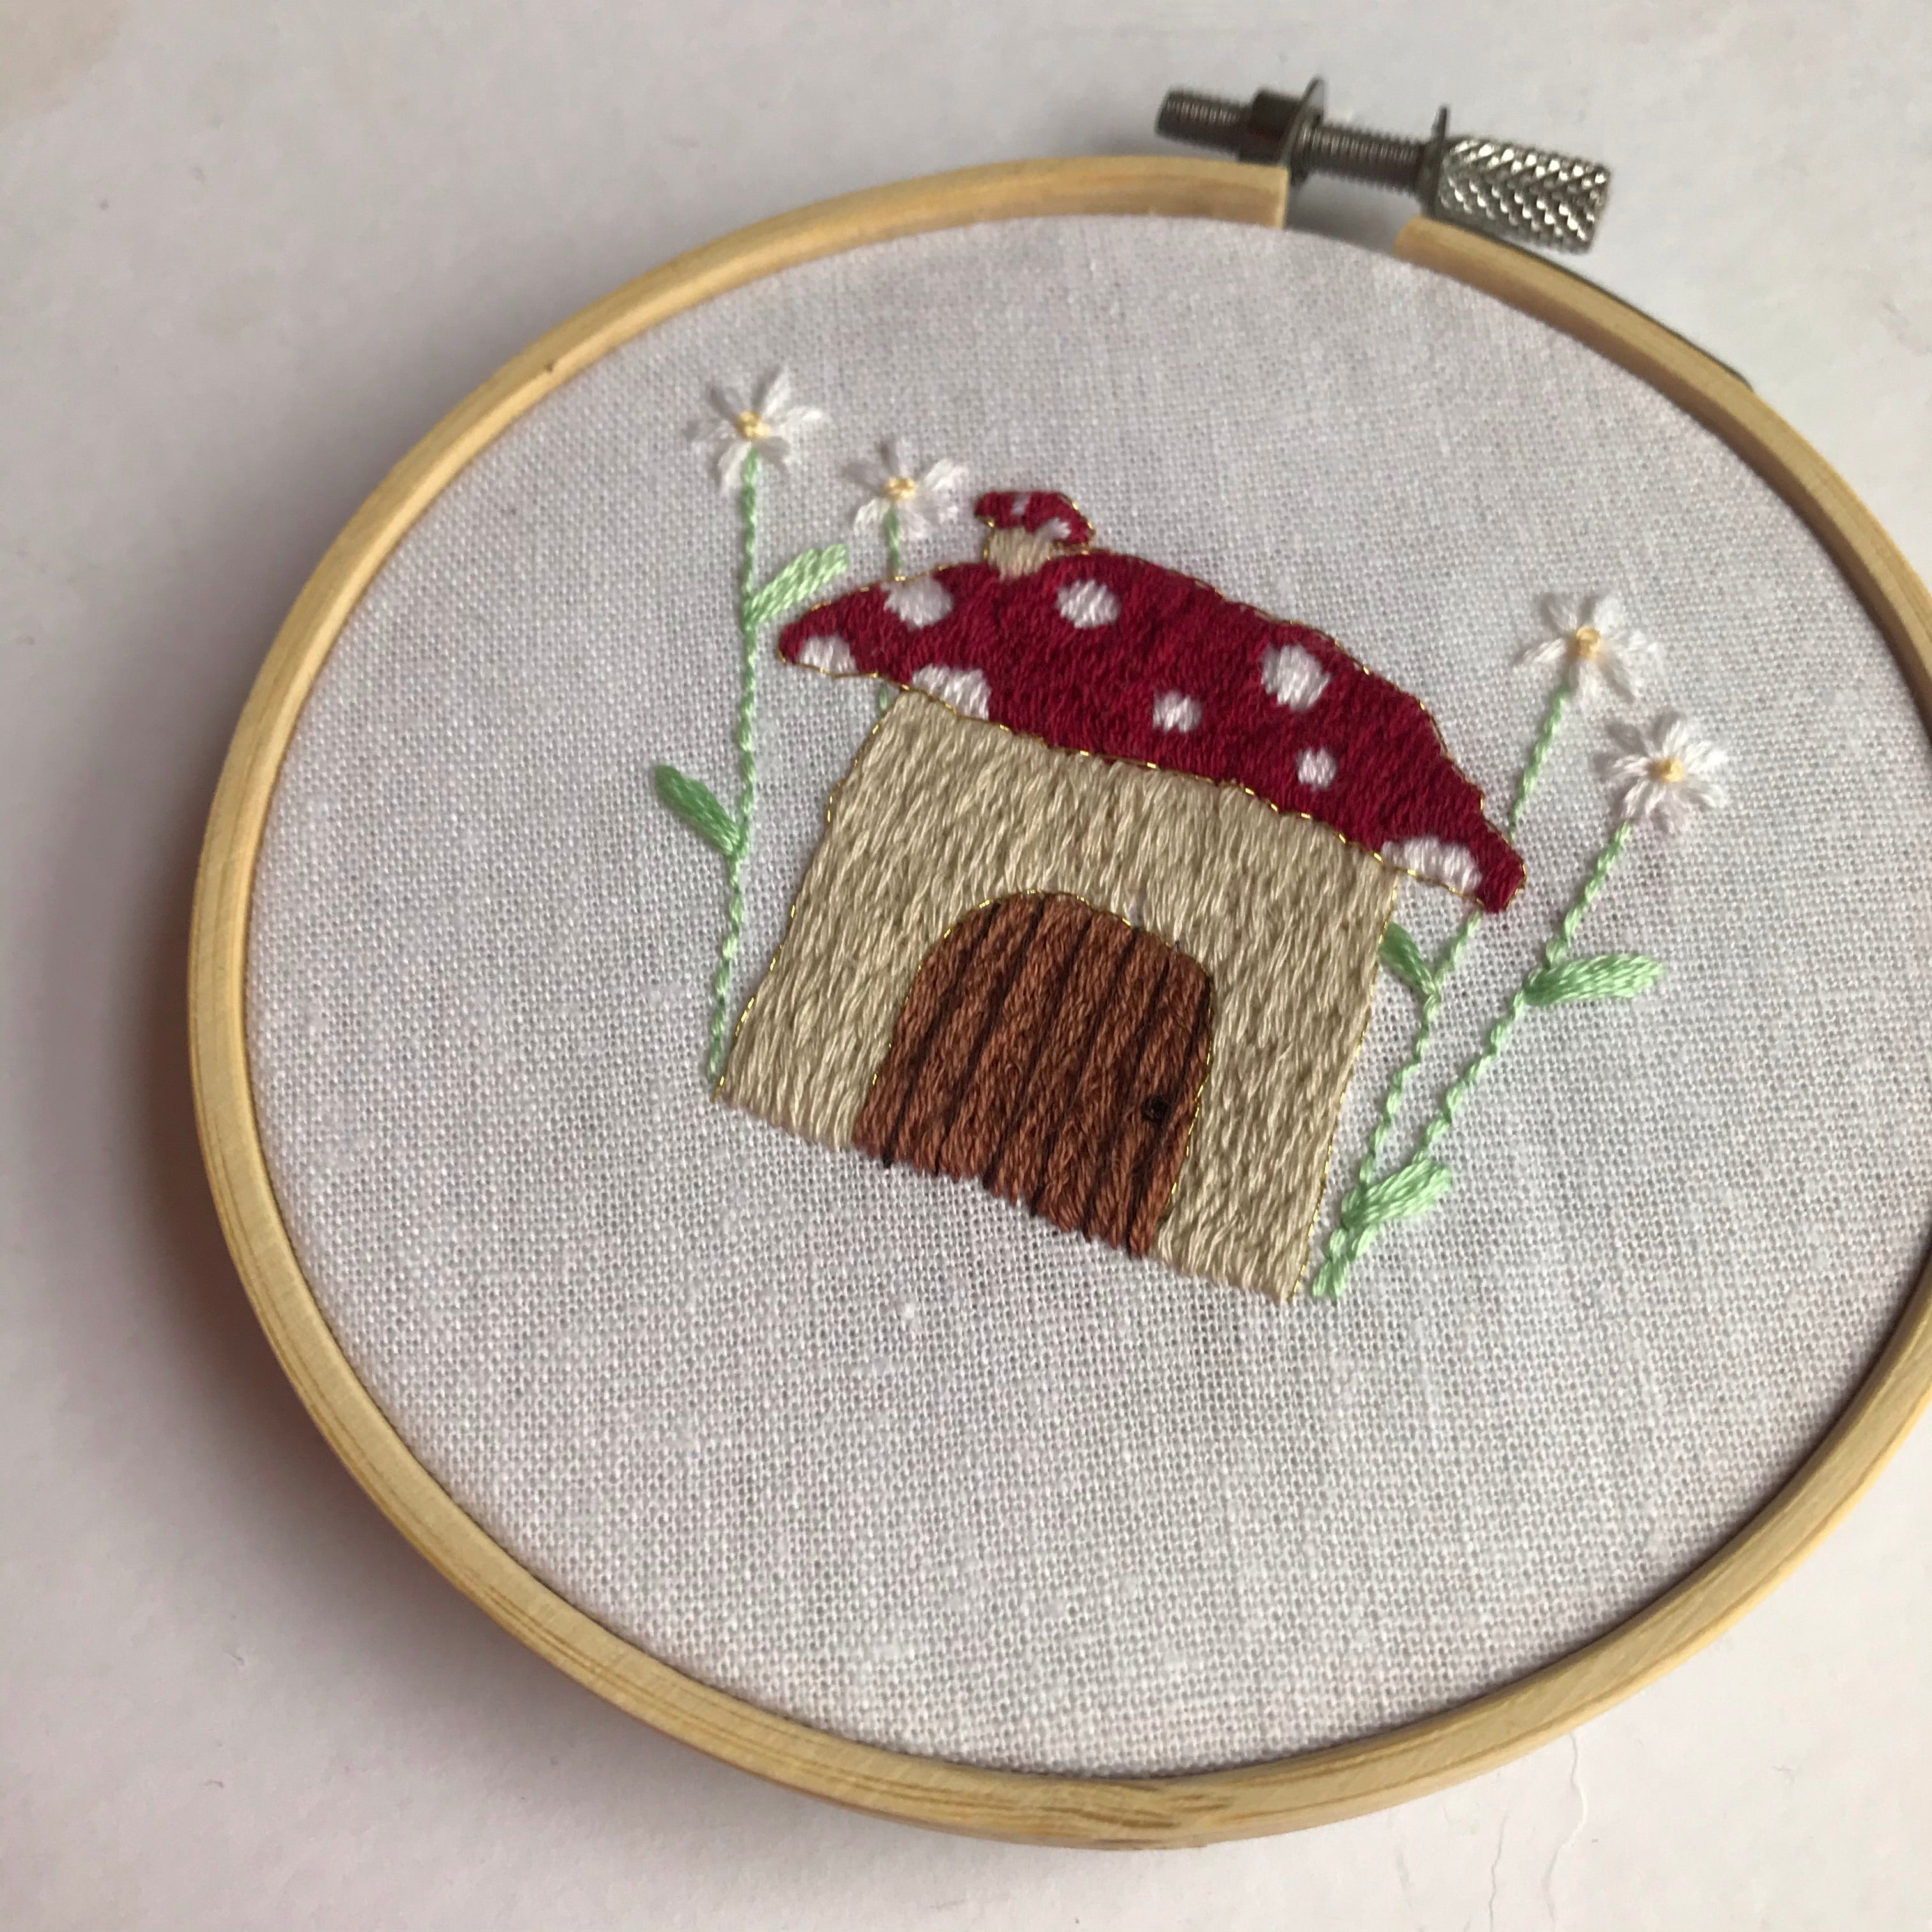 Fairytale Collection - Mushroom House Embroidery Hoop Art (4 inches) MADE TO ORDER